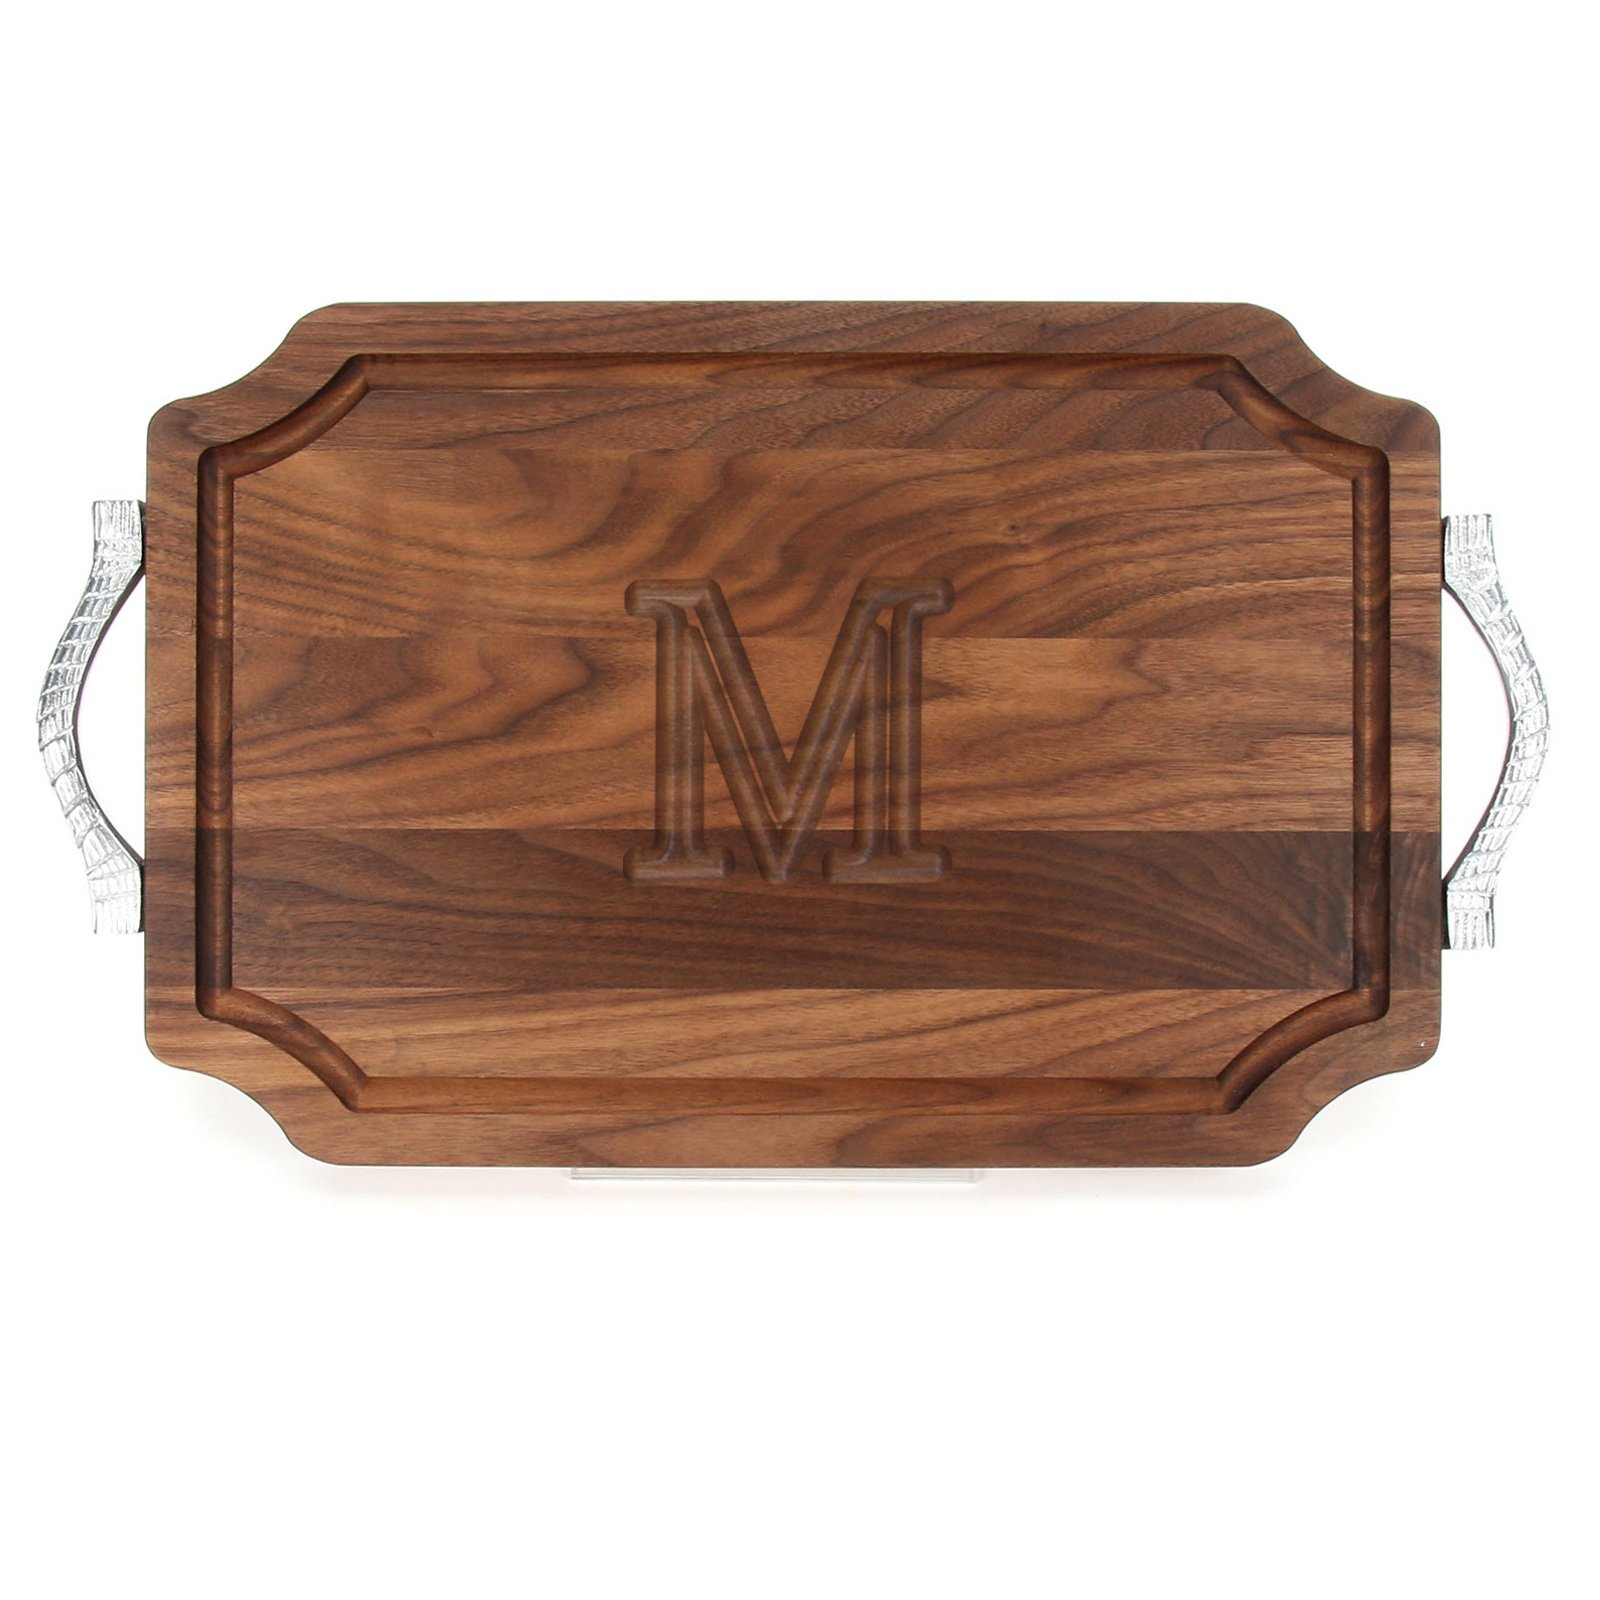 BigWood Boards W310-RP-M Cutting Board with Rope Handle in Cast Aluminum with Scalloped Corners, 12-Inch by 18-Inch by 1-Inch, Monogrammed ''M'', Walnut